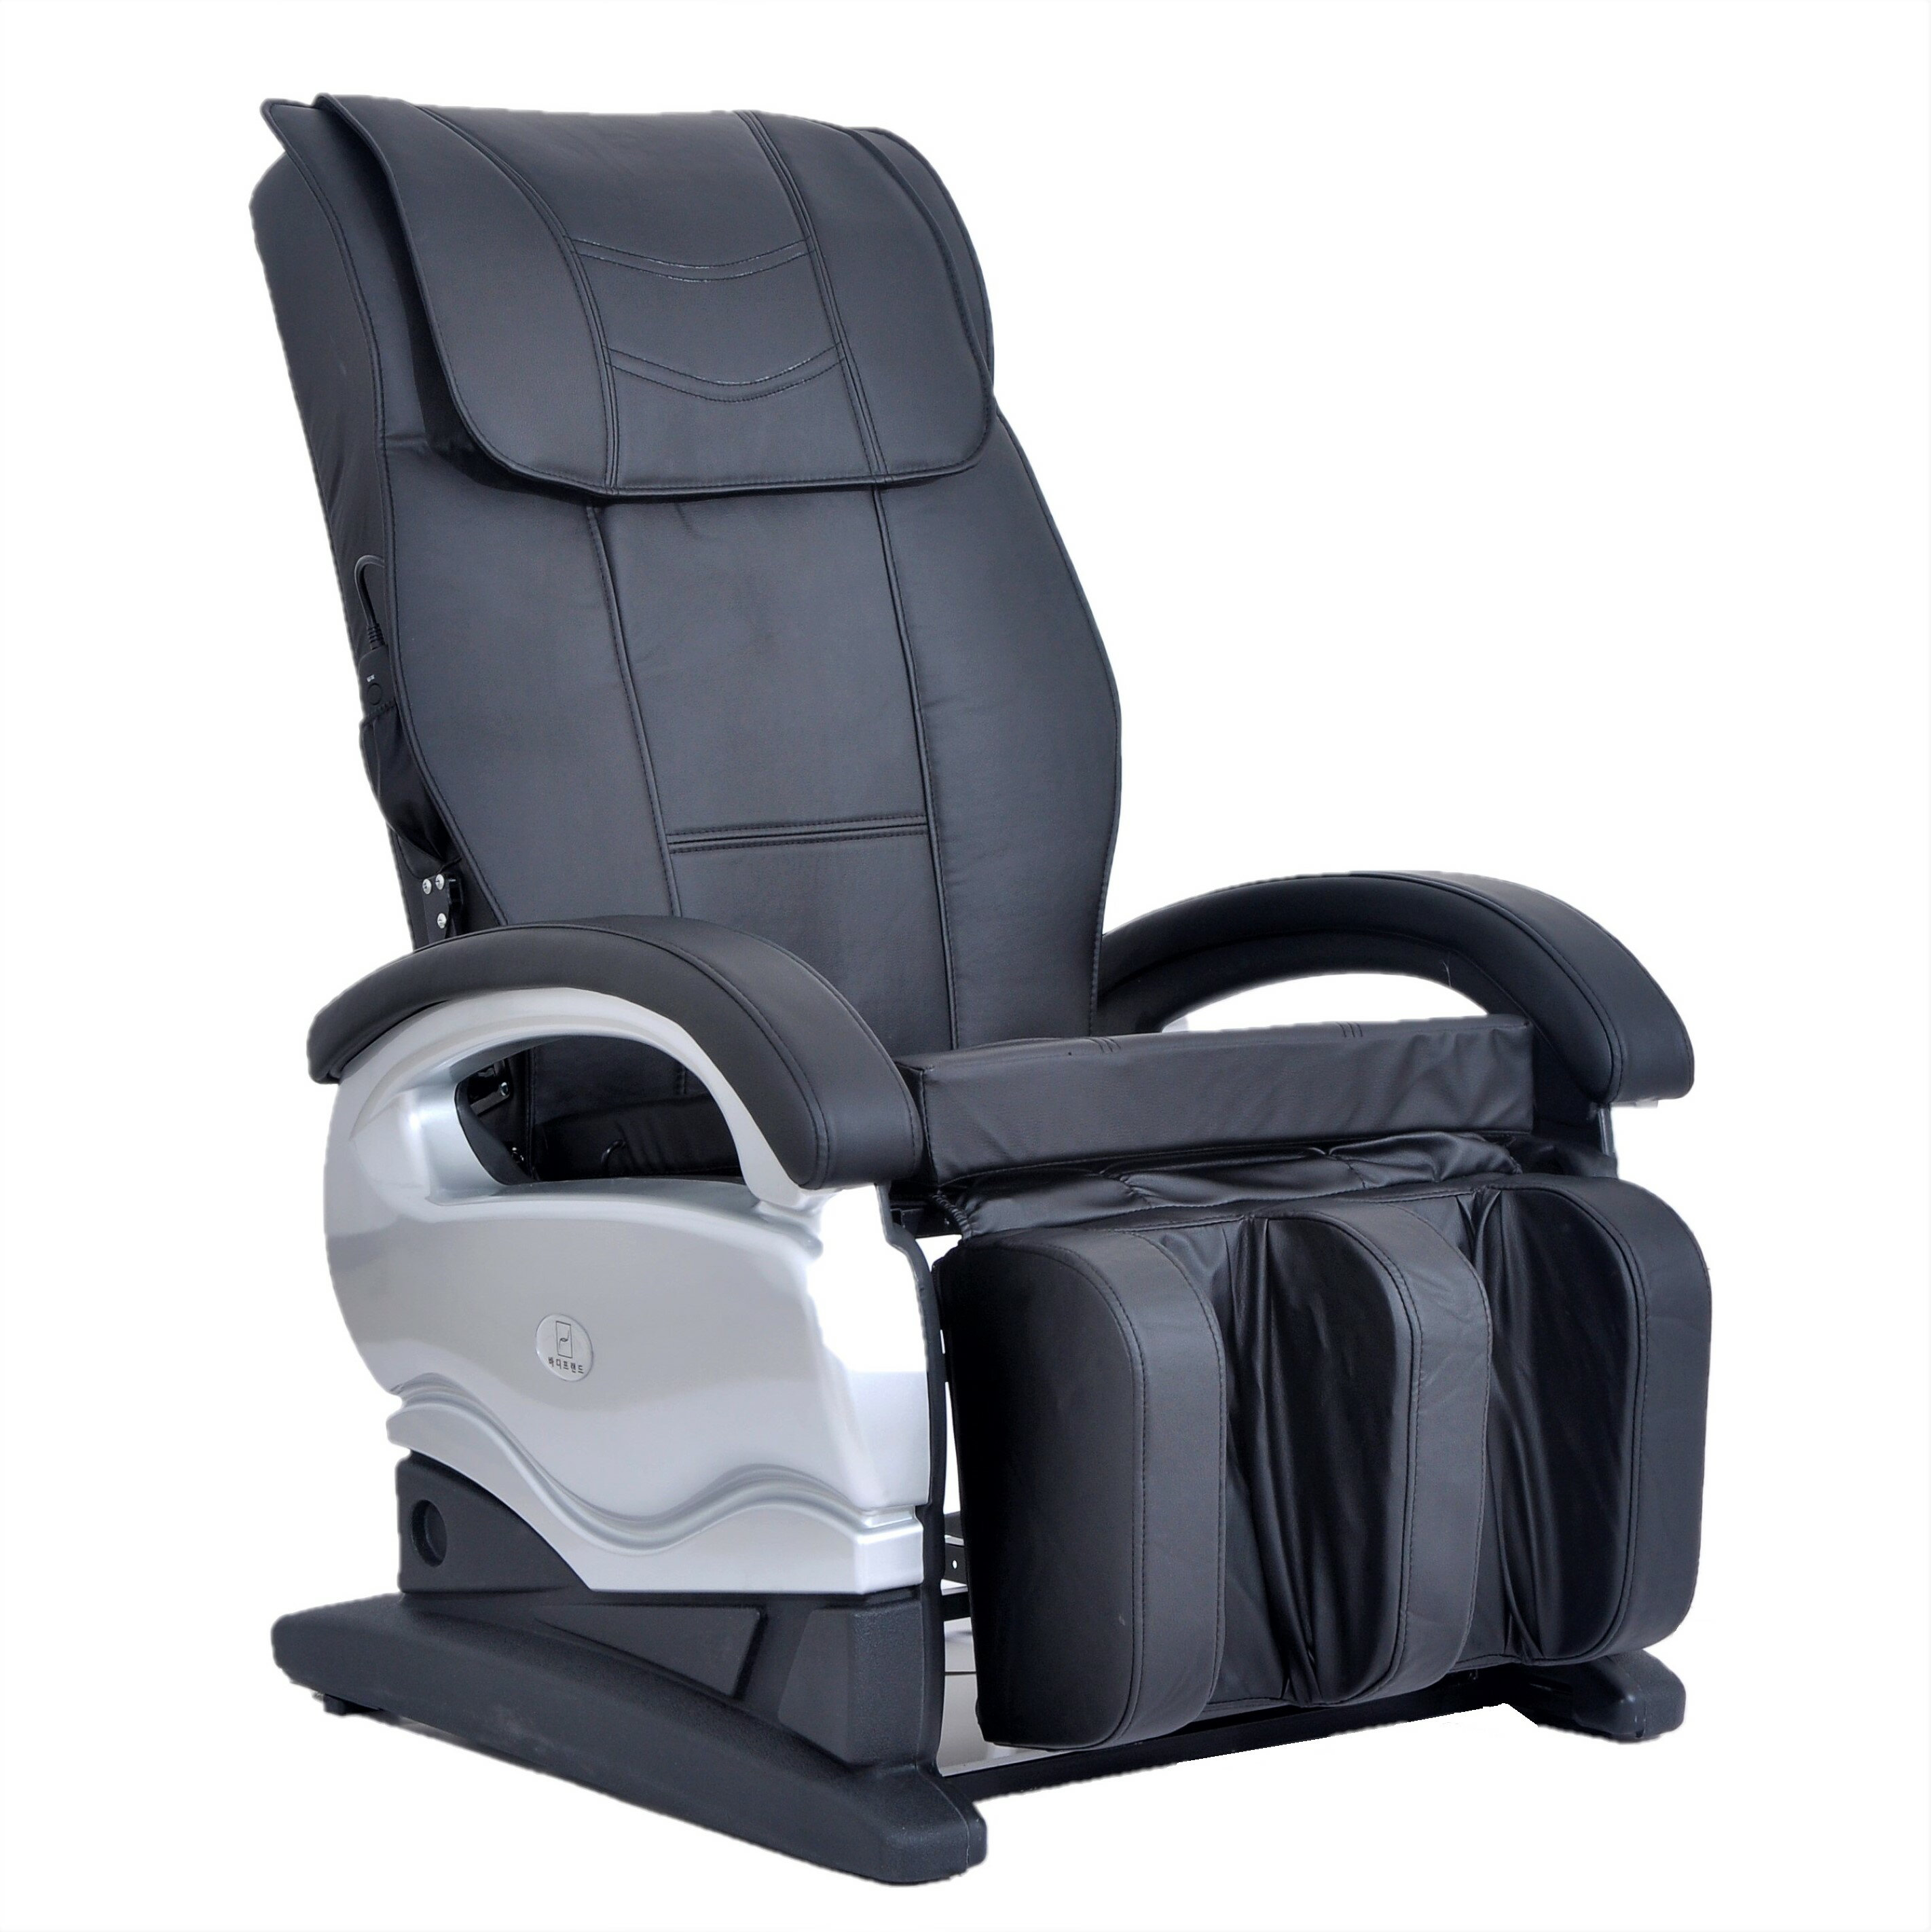 Sensational Mcombo Electric Massage Chair Sofa With Heat And Roller For Home Office Living Room Manual Recliner Faux Leather 8881 Caraccident5 Cool Chair Designs And Ideas Caraccident5Info